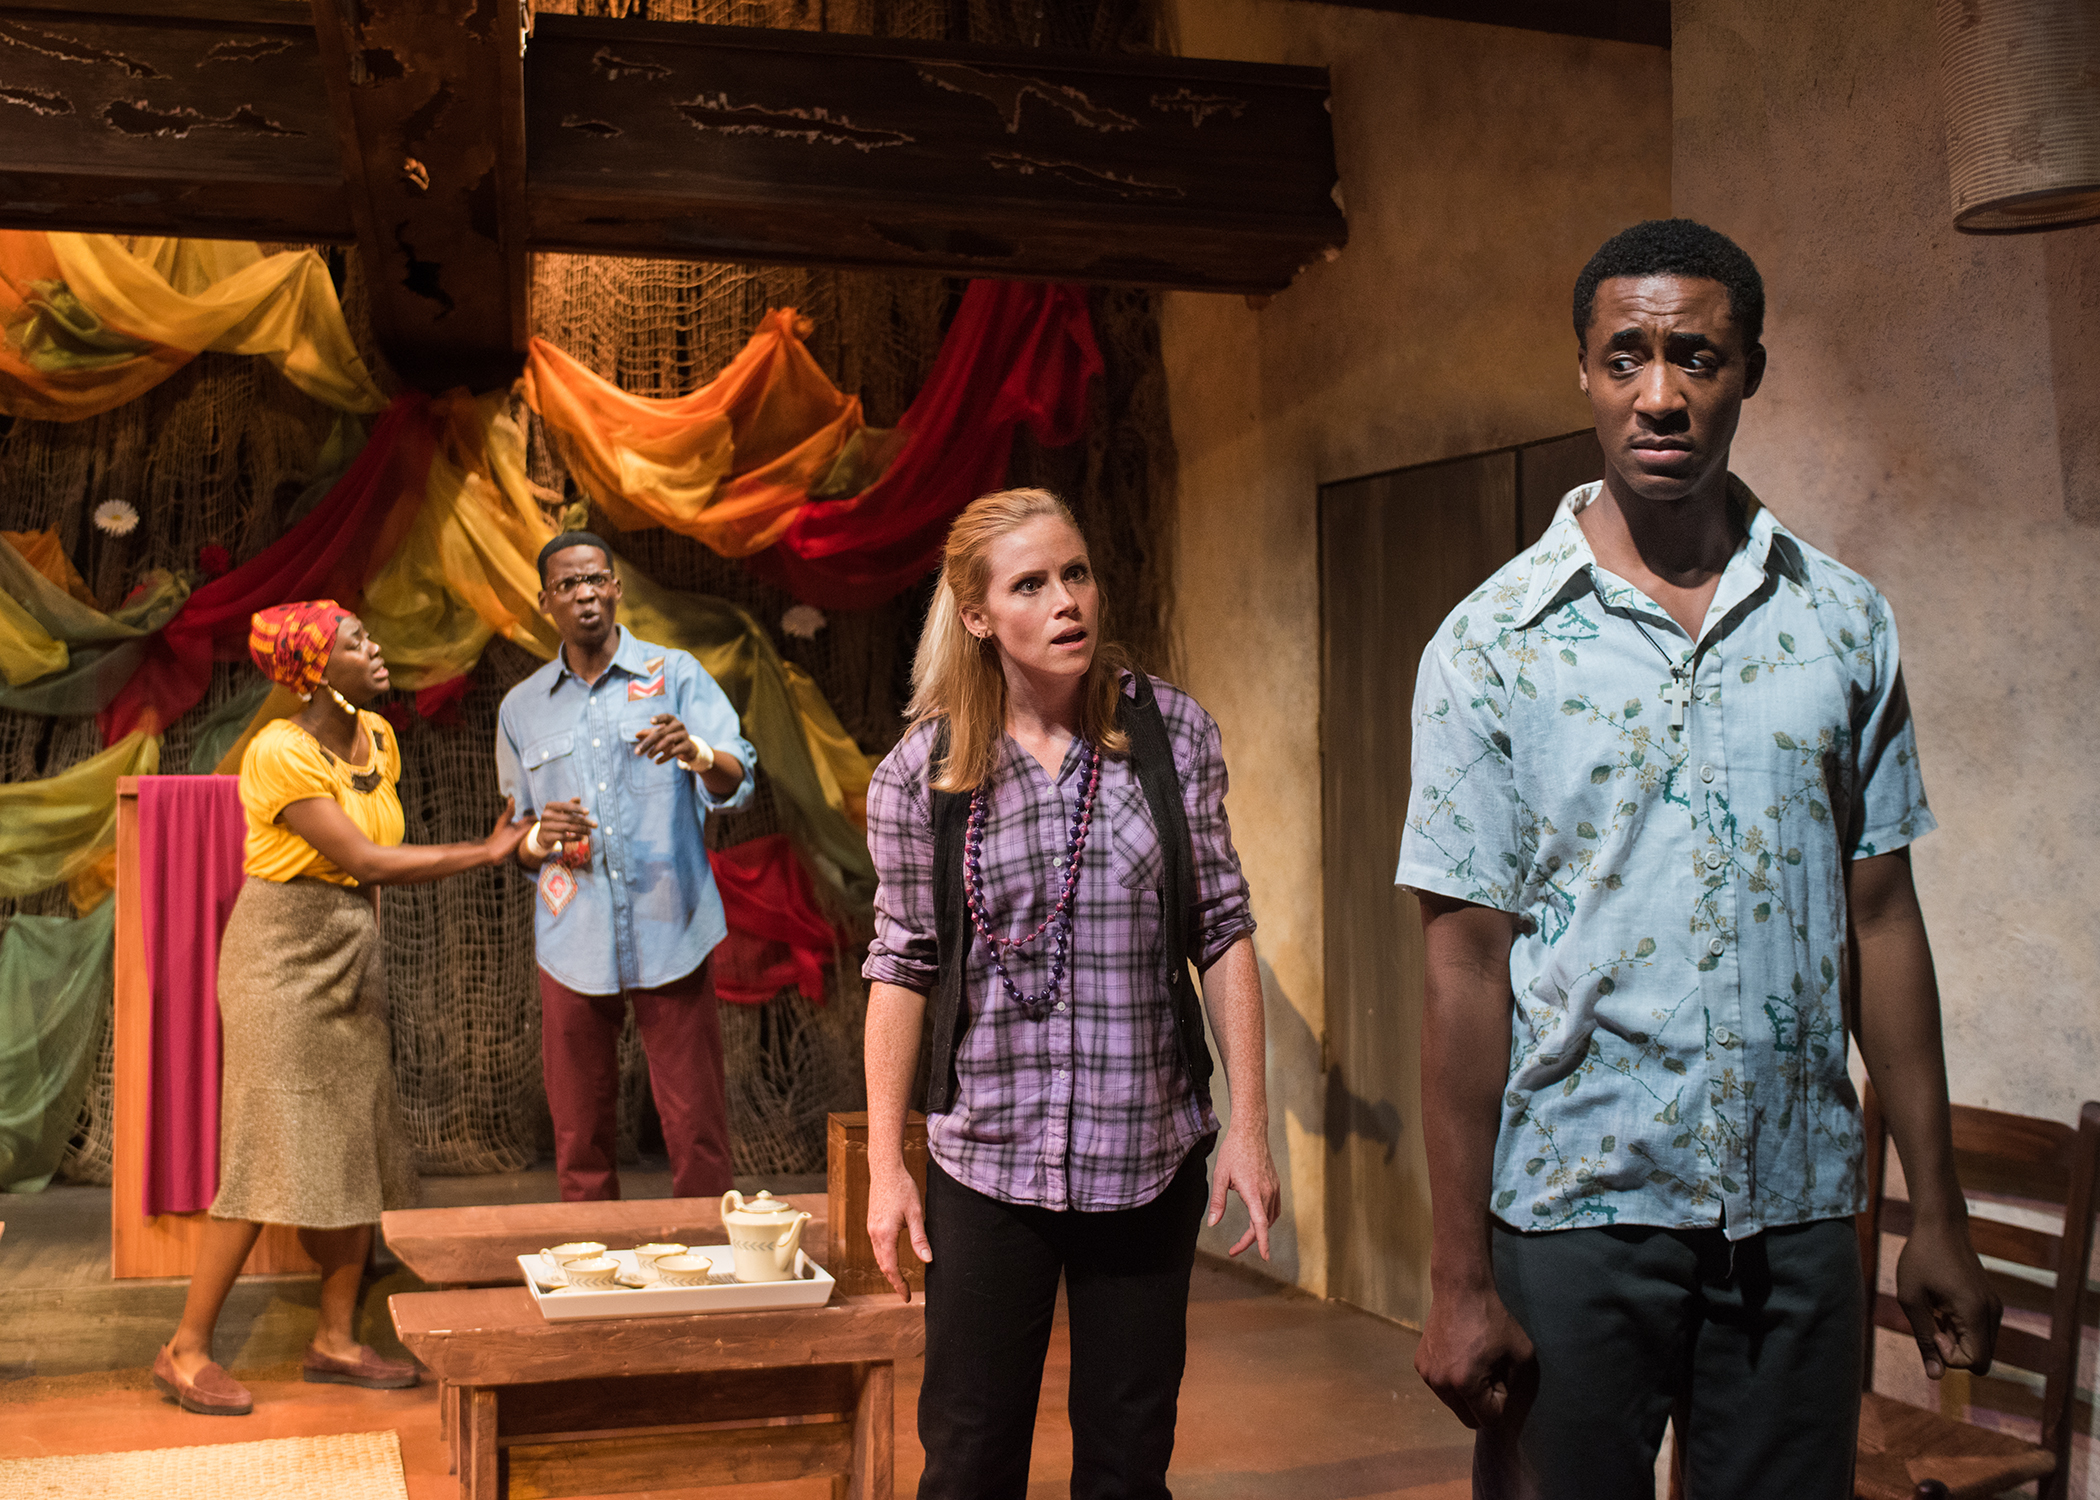 Ruth (Gabriella Momah) and Francis (Howard Johnson) try to make sense of the situation as Chris (Megan Timpane) confronts Paul (Dane  Troy*). Photo by Lois Tema.  *Appears through the courtesy of Actors' Equity Association, the Union of Professional Actors and Stage Managers in the United States.